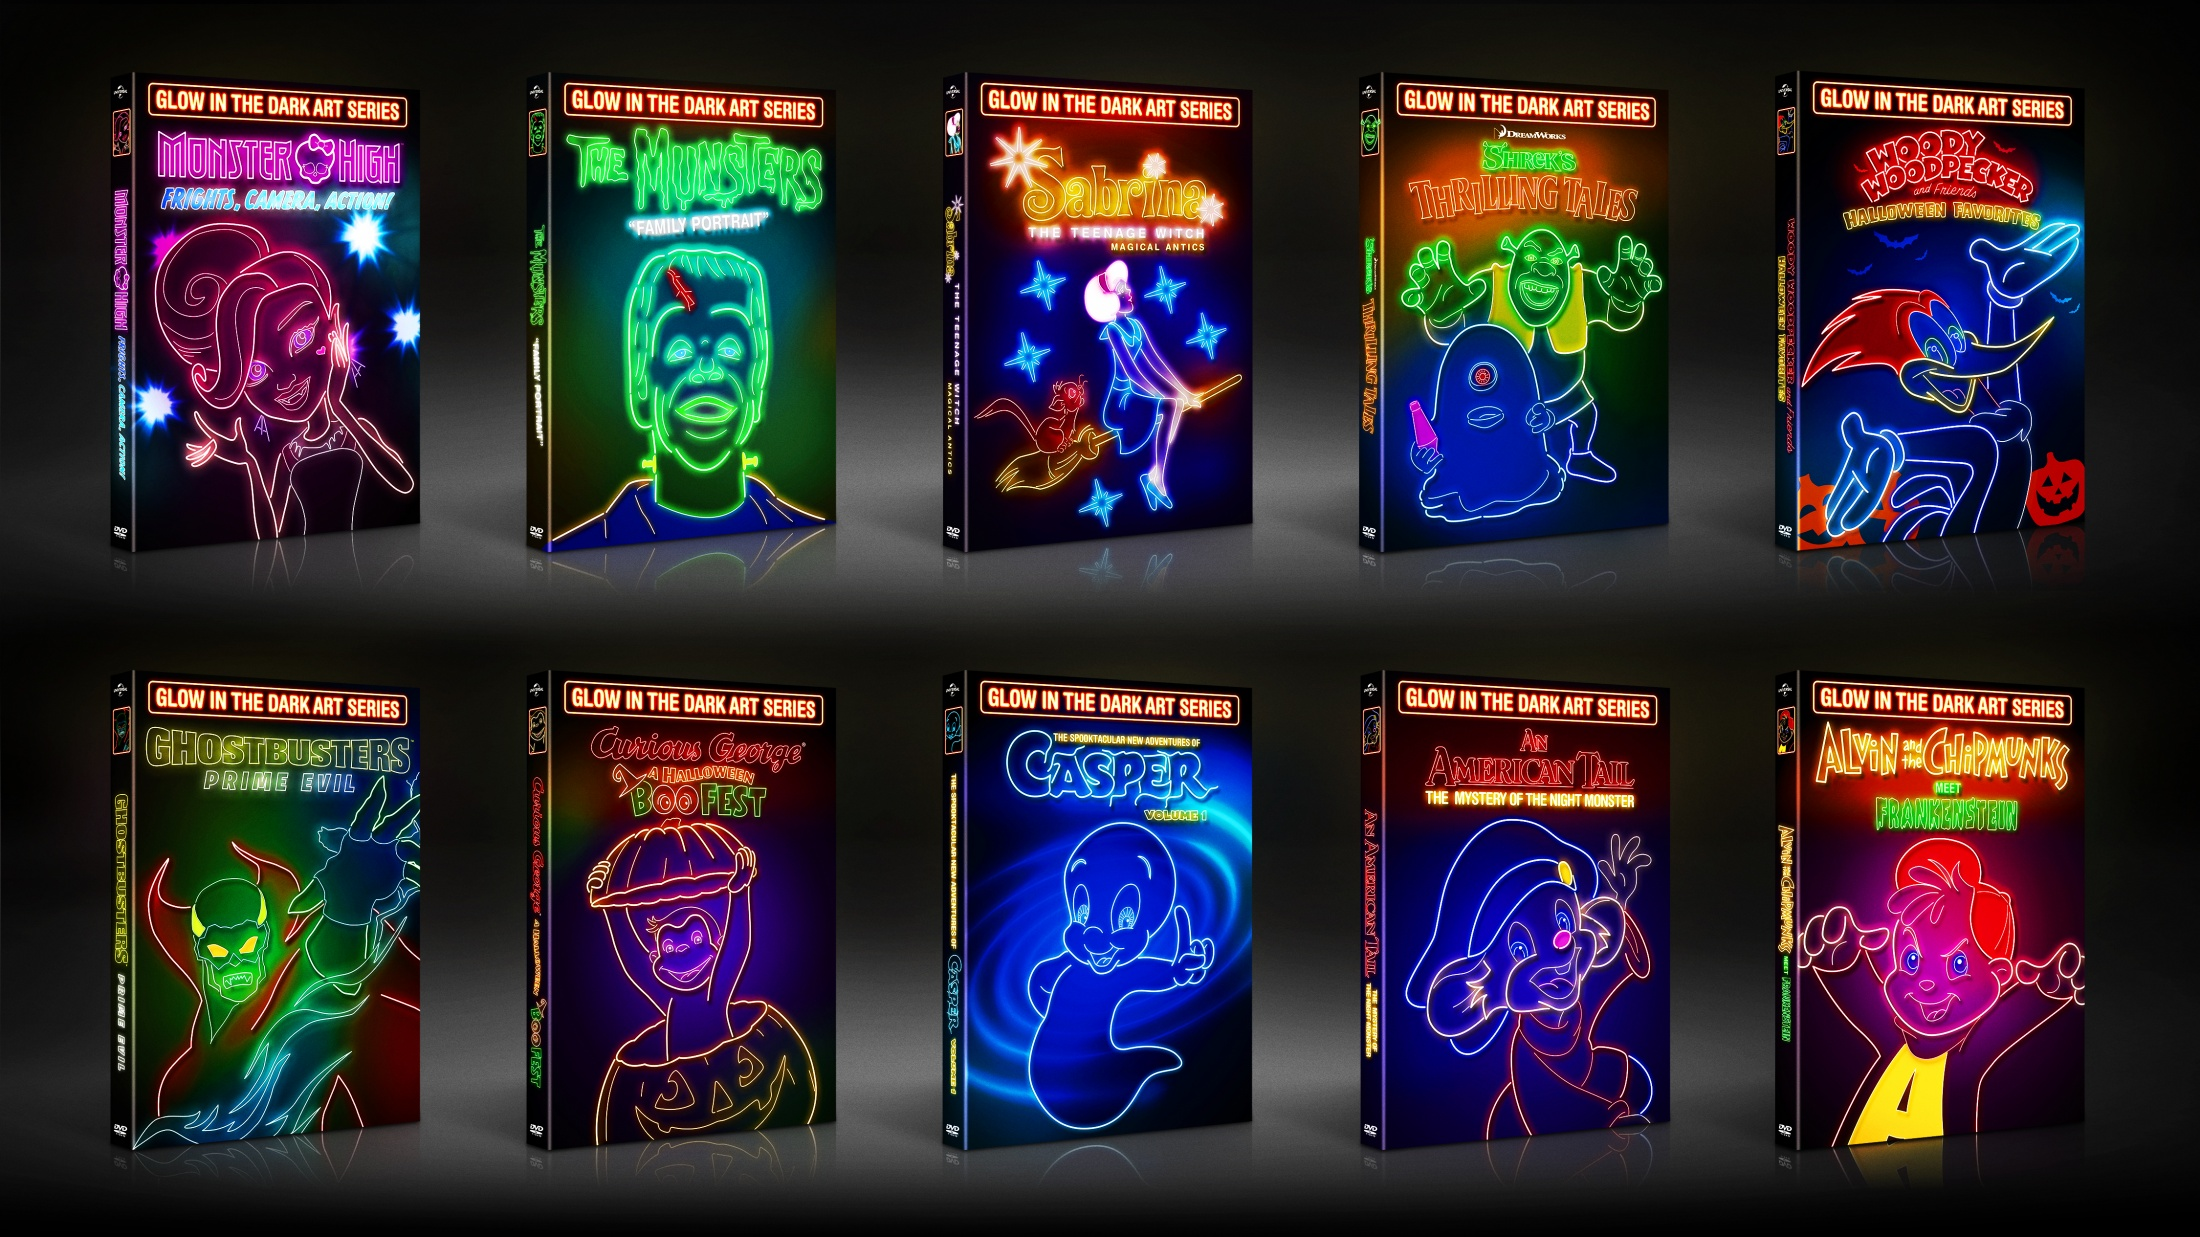 Thumbnail for Glow in the Dark Art Packaging Series